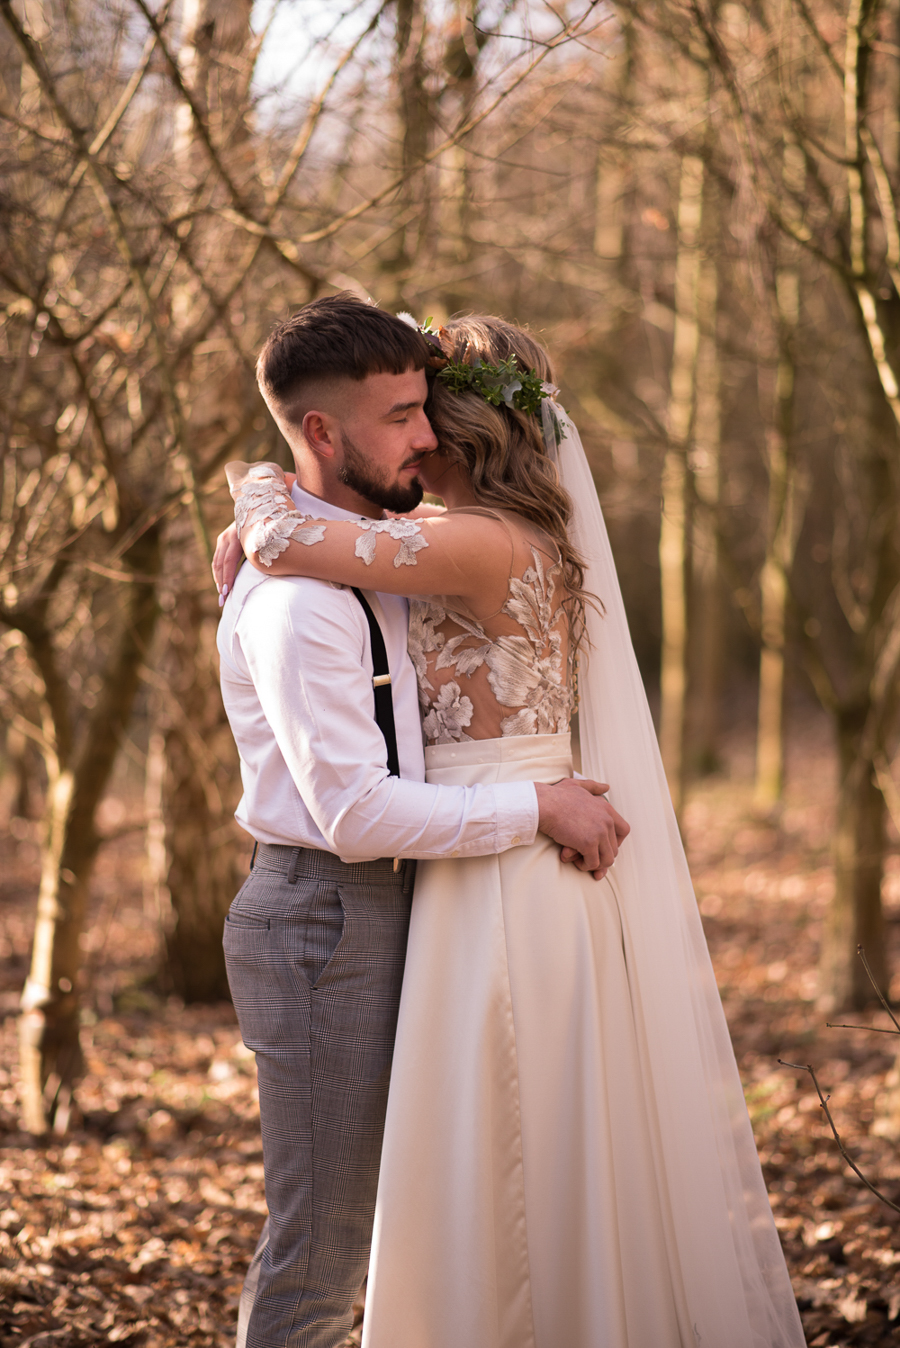 See you at Sunset - a warm autumnal wedding photoshoot with Nicola Belson Photography (21)